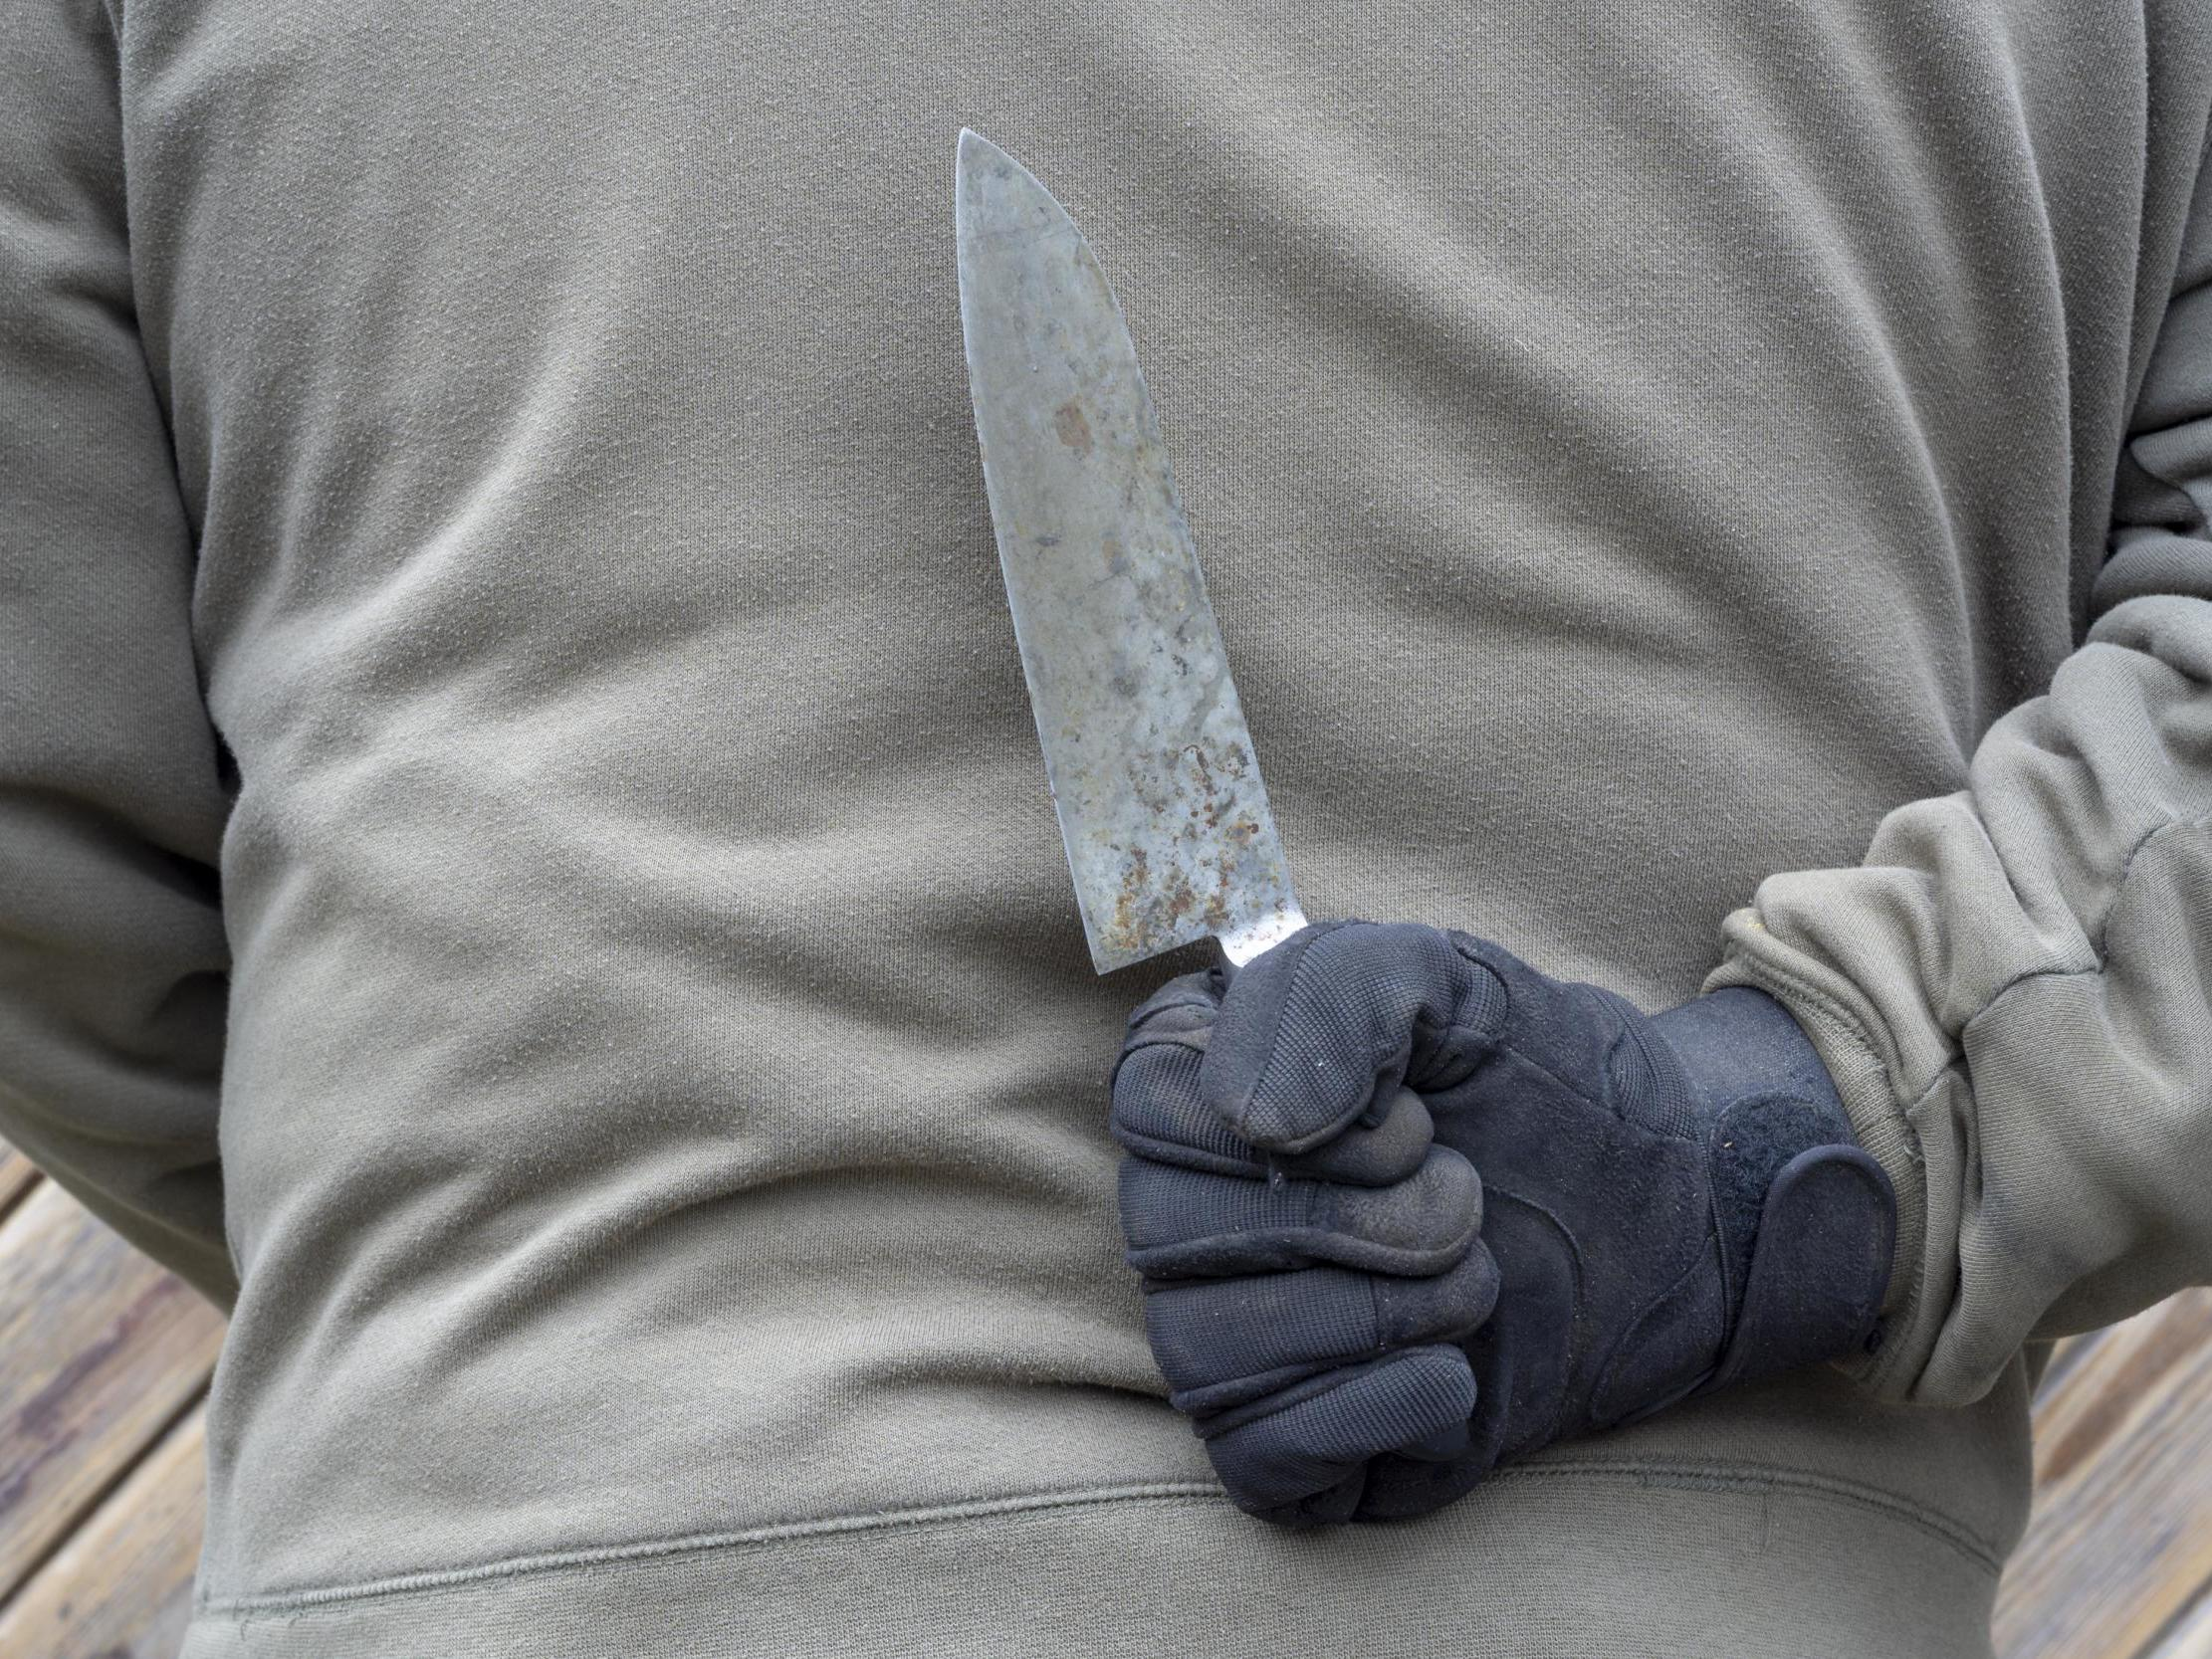 Knife crime: Children as young as four among hundreds caught with blades at school